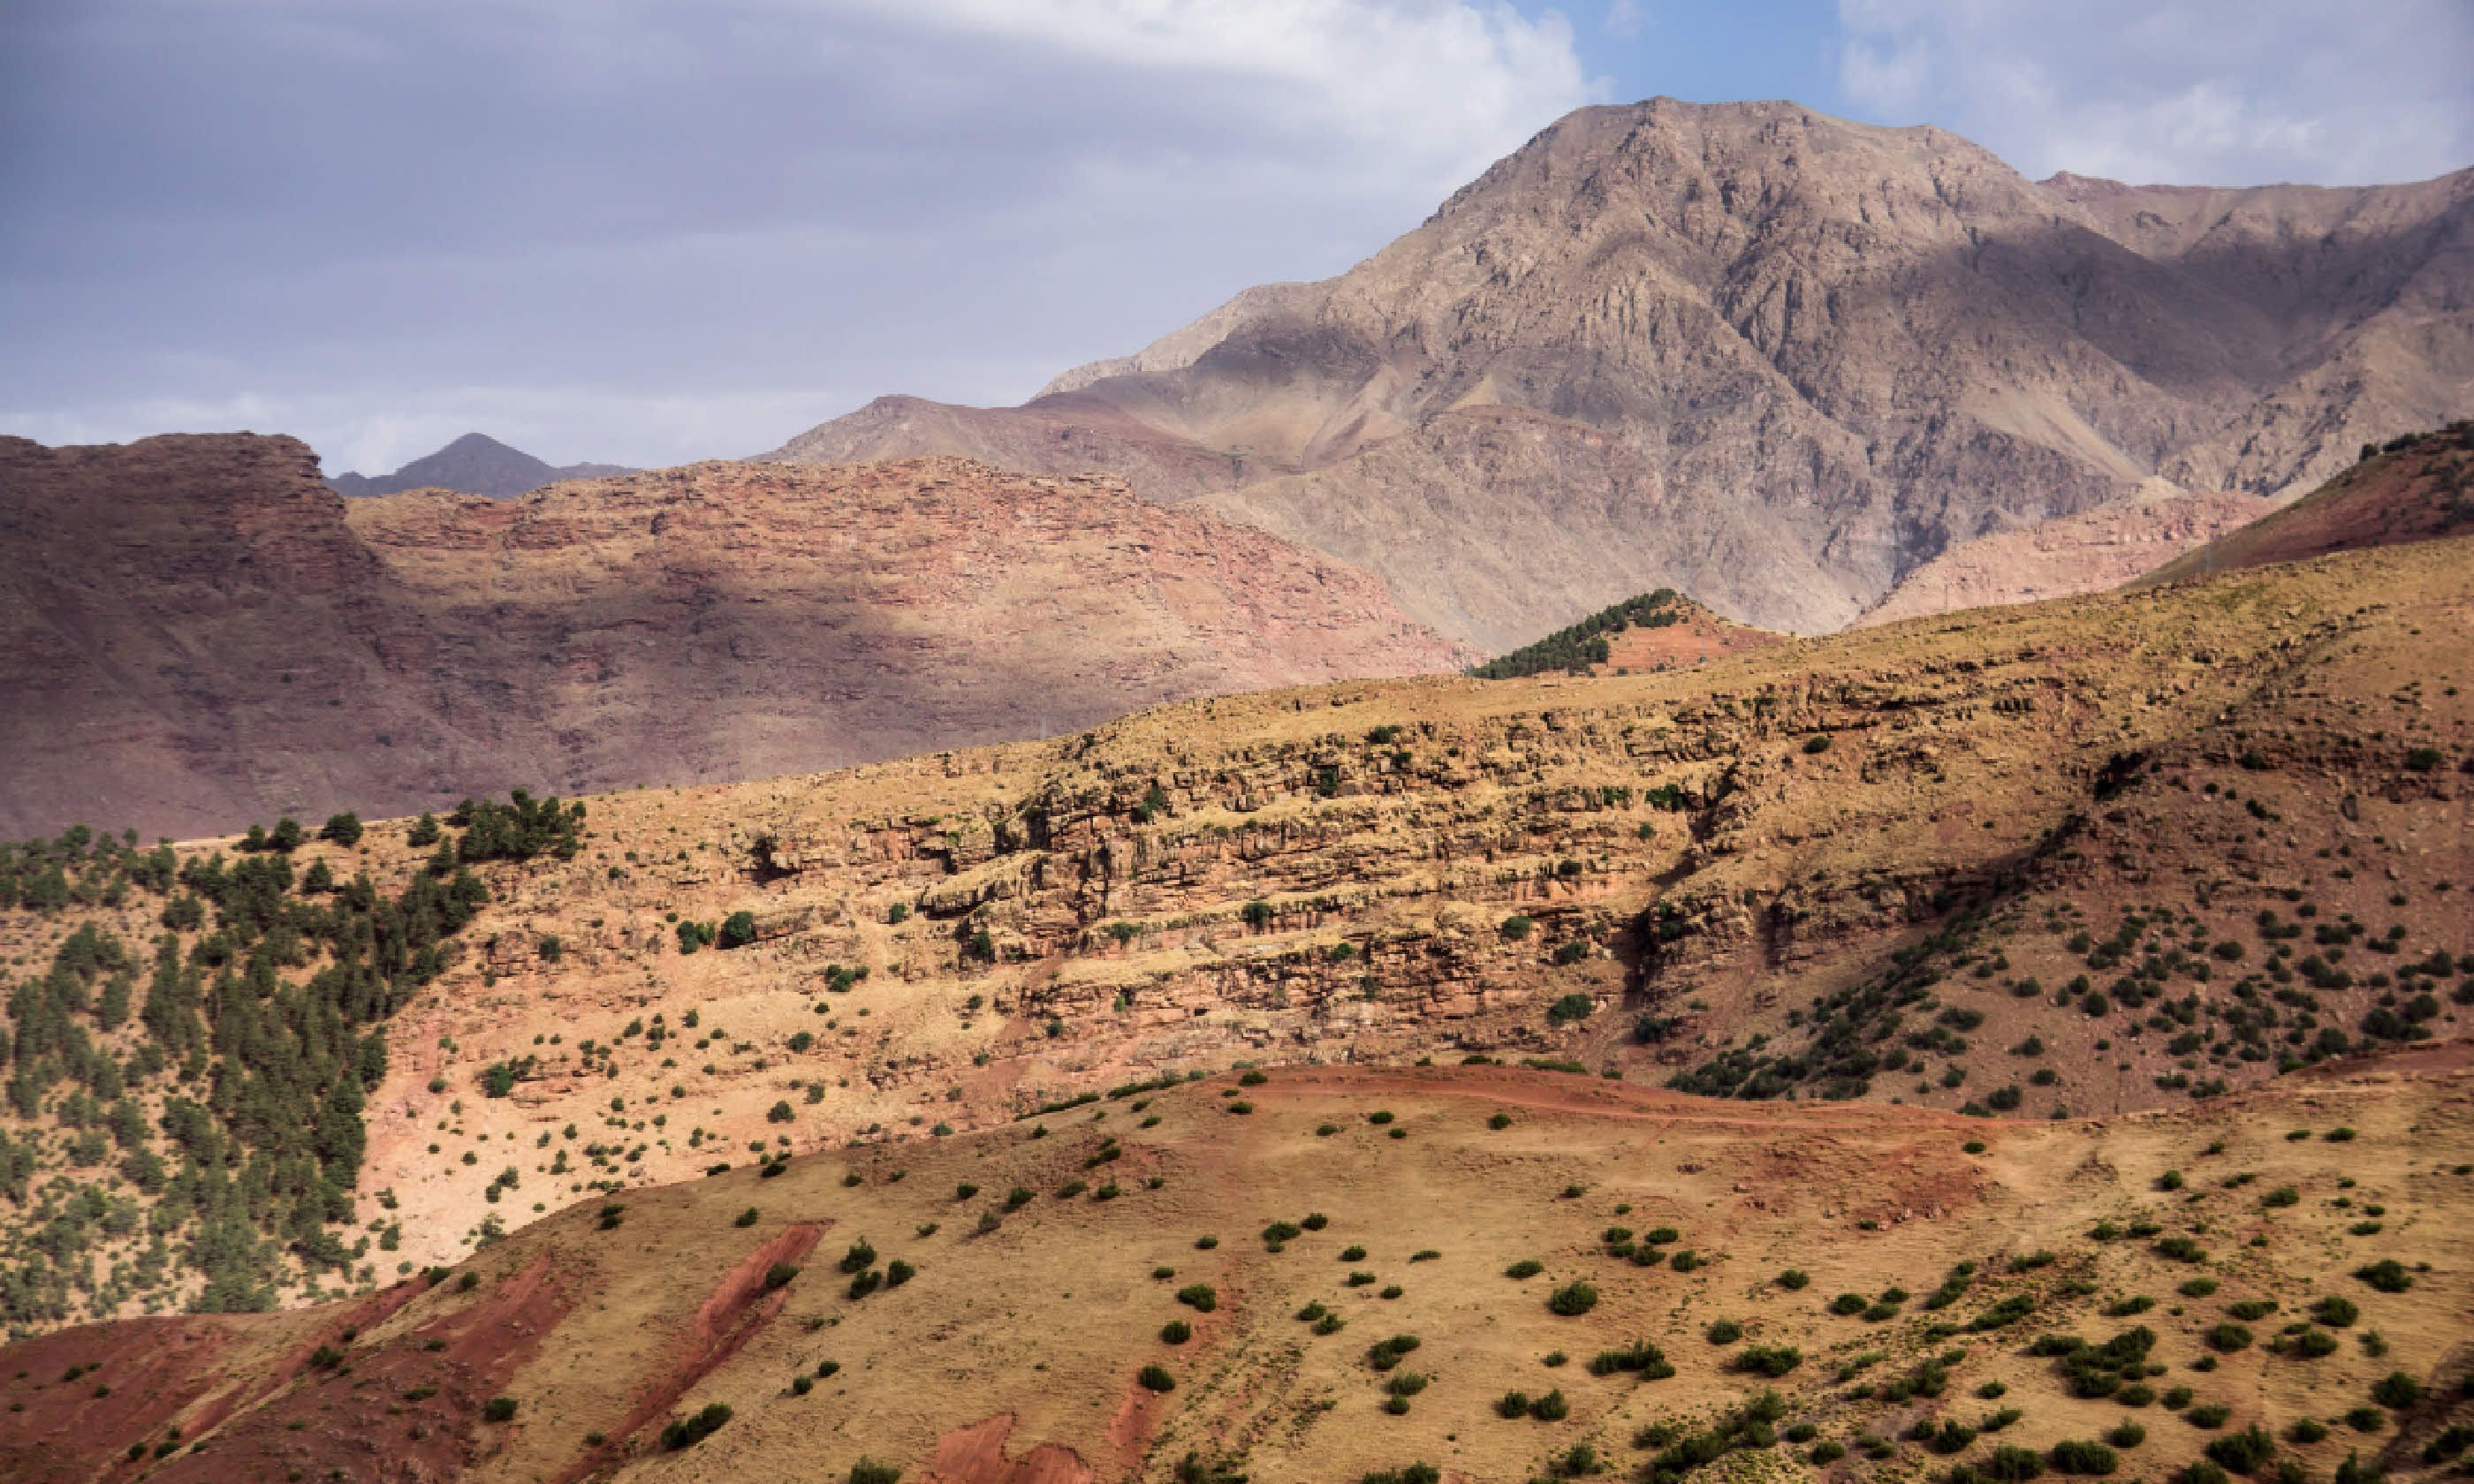 Toubkal National Park, High Atlas, Morocco (Shutterstock)